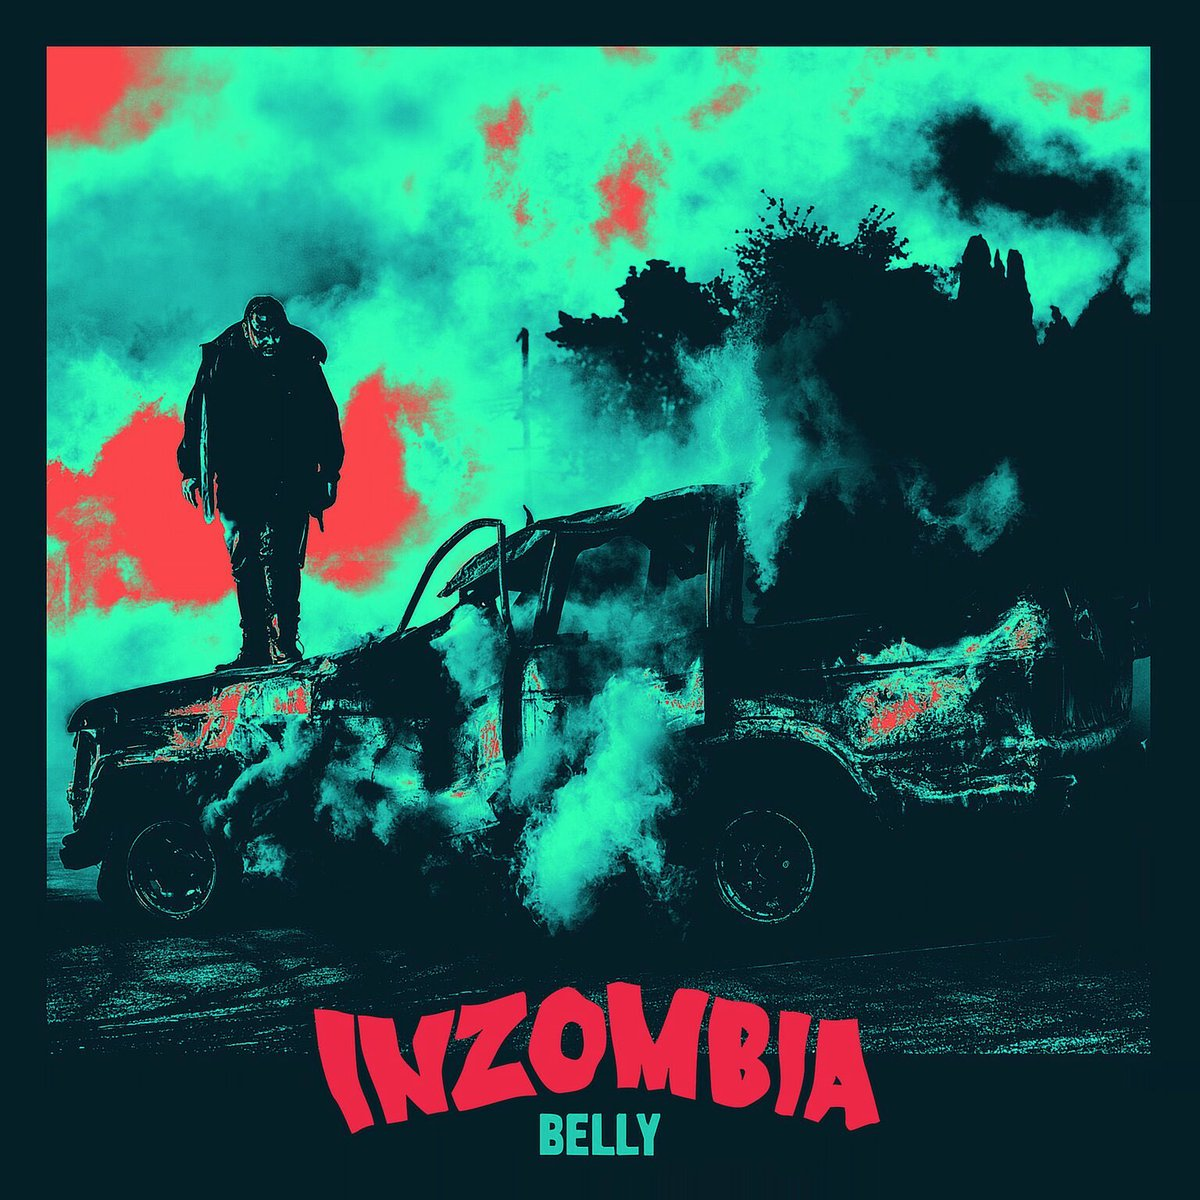 belly inzombia